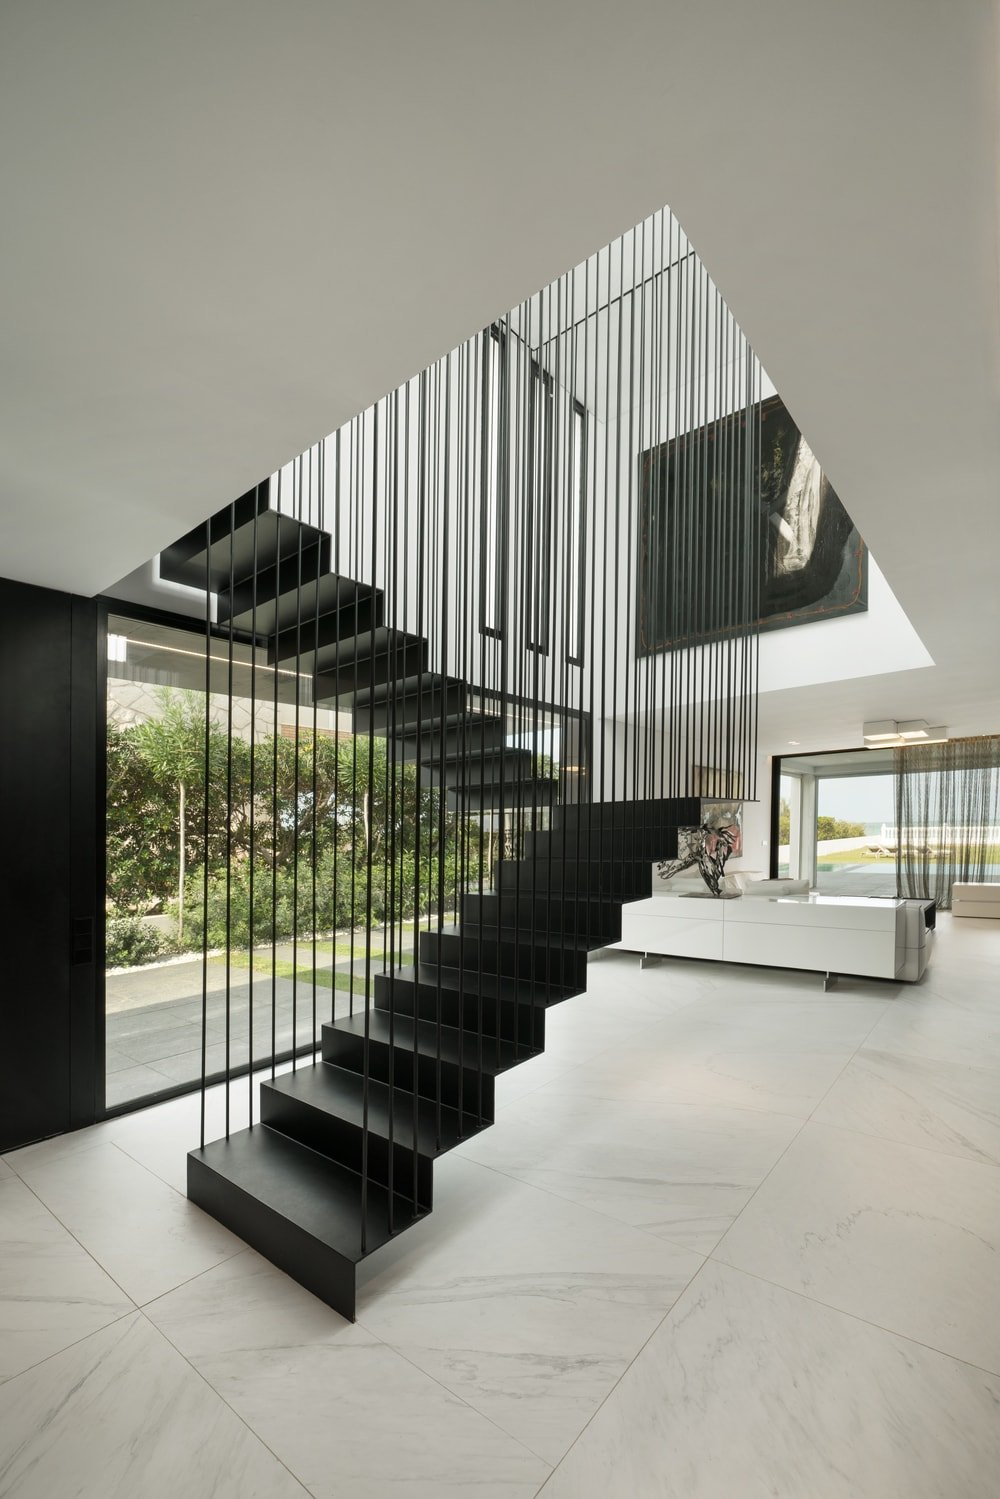 This is the view of the foyer. Here you can better appreciate the modern design of the staircase that stands out against the white flooring, walls and ceiling.